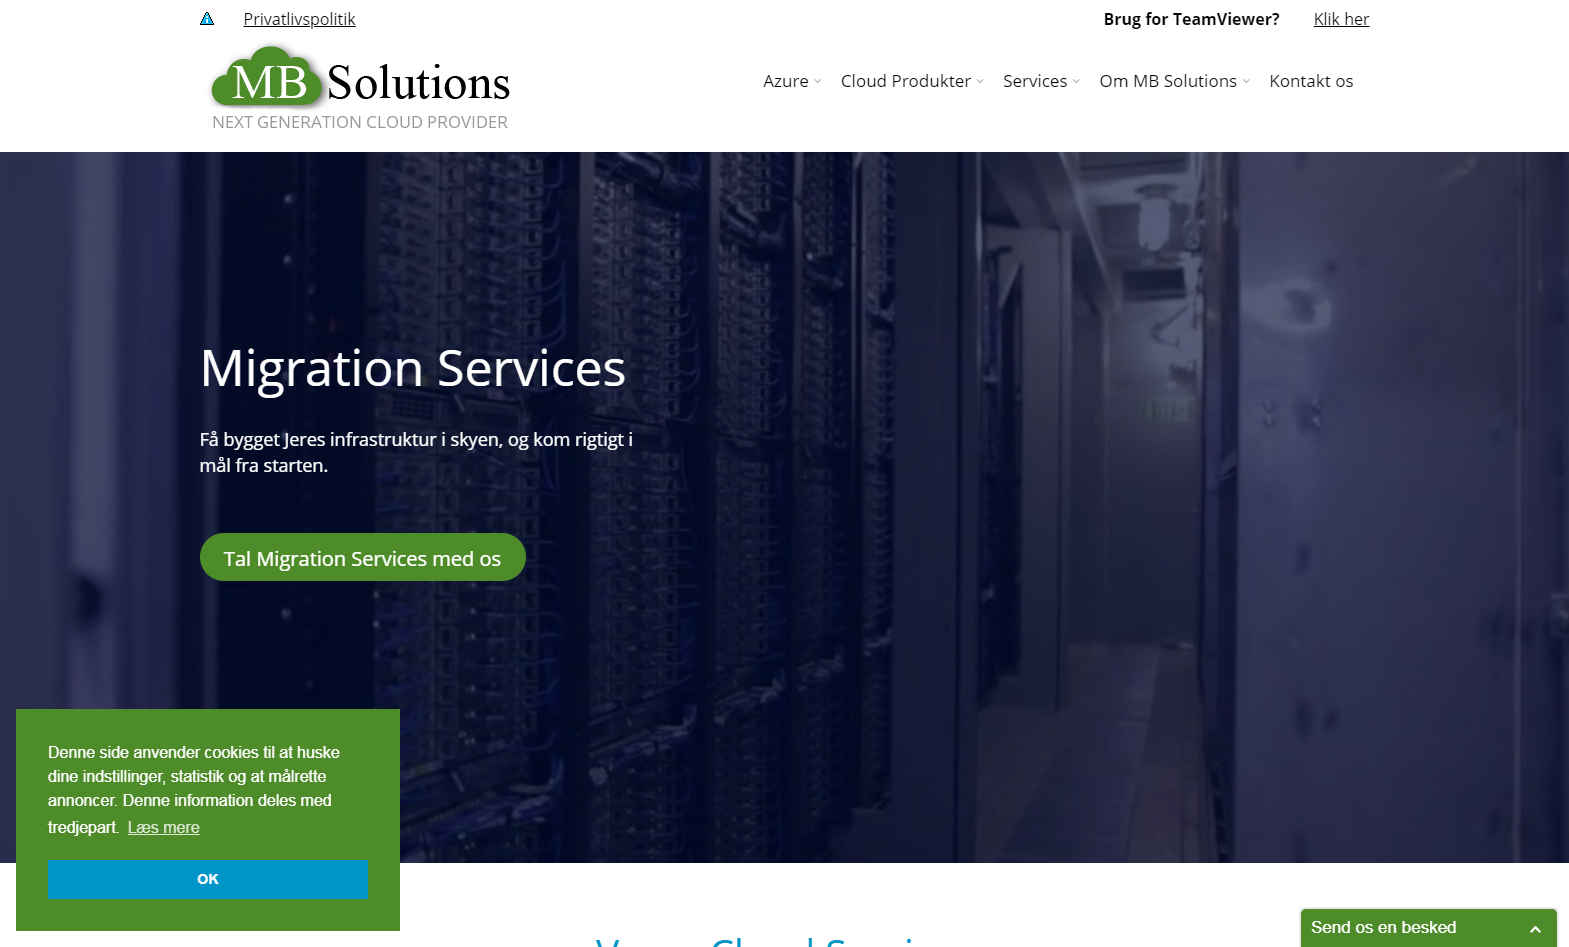 Detaljer : MB Solutions